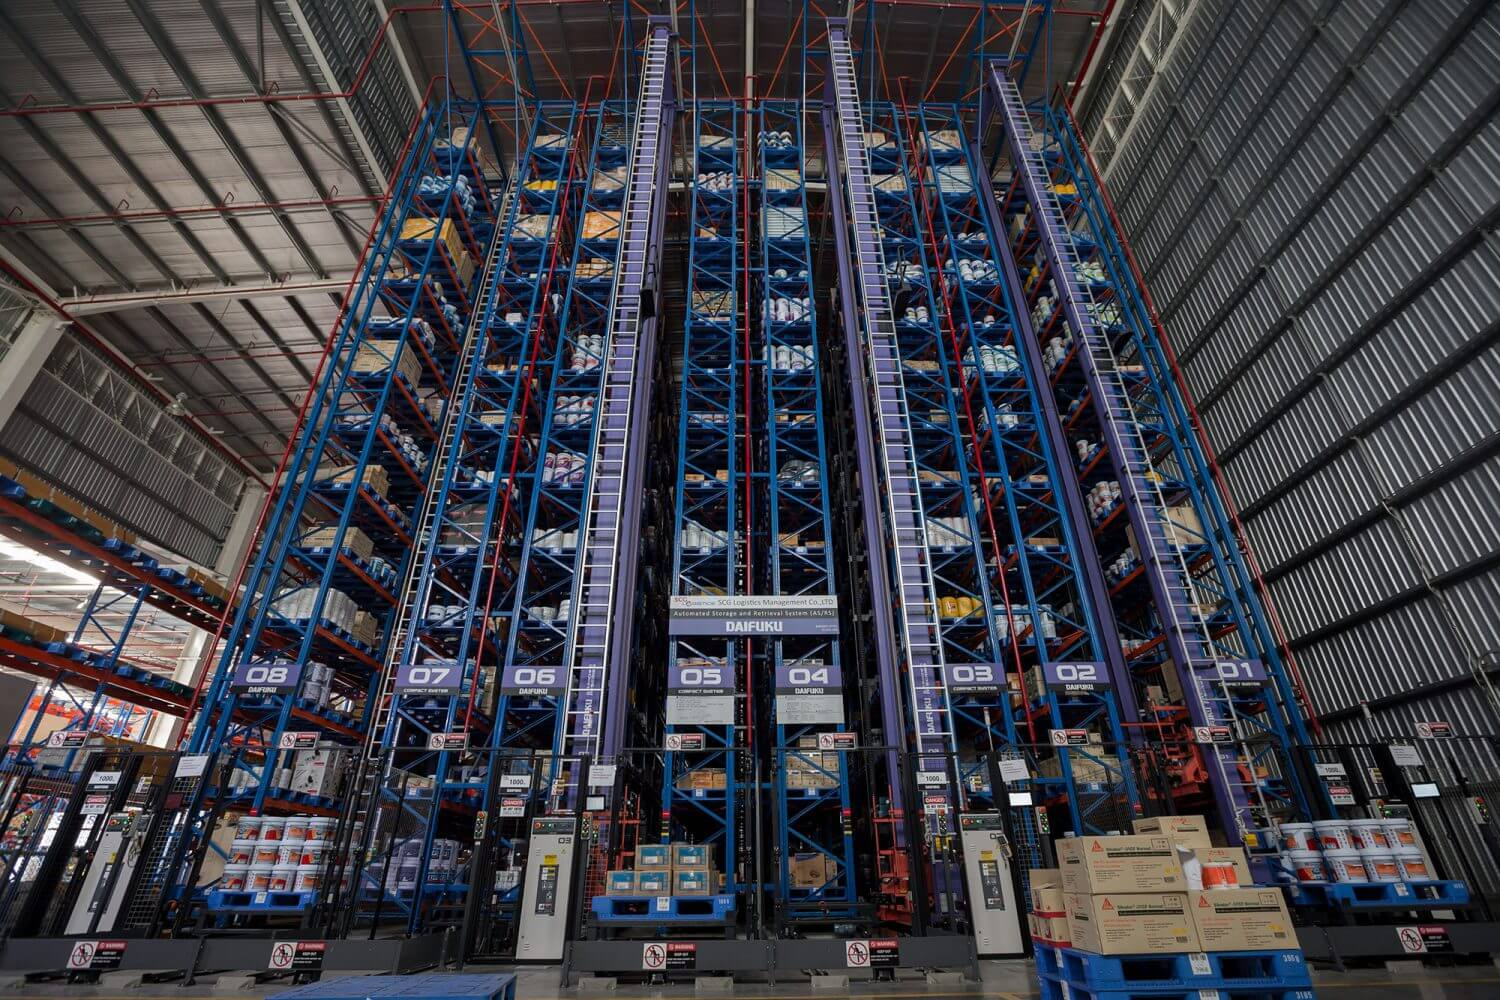 AS-RS or Automated Storage & Retrieval System